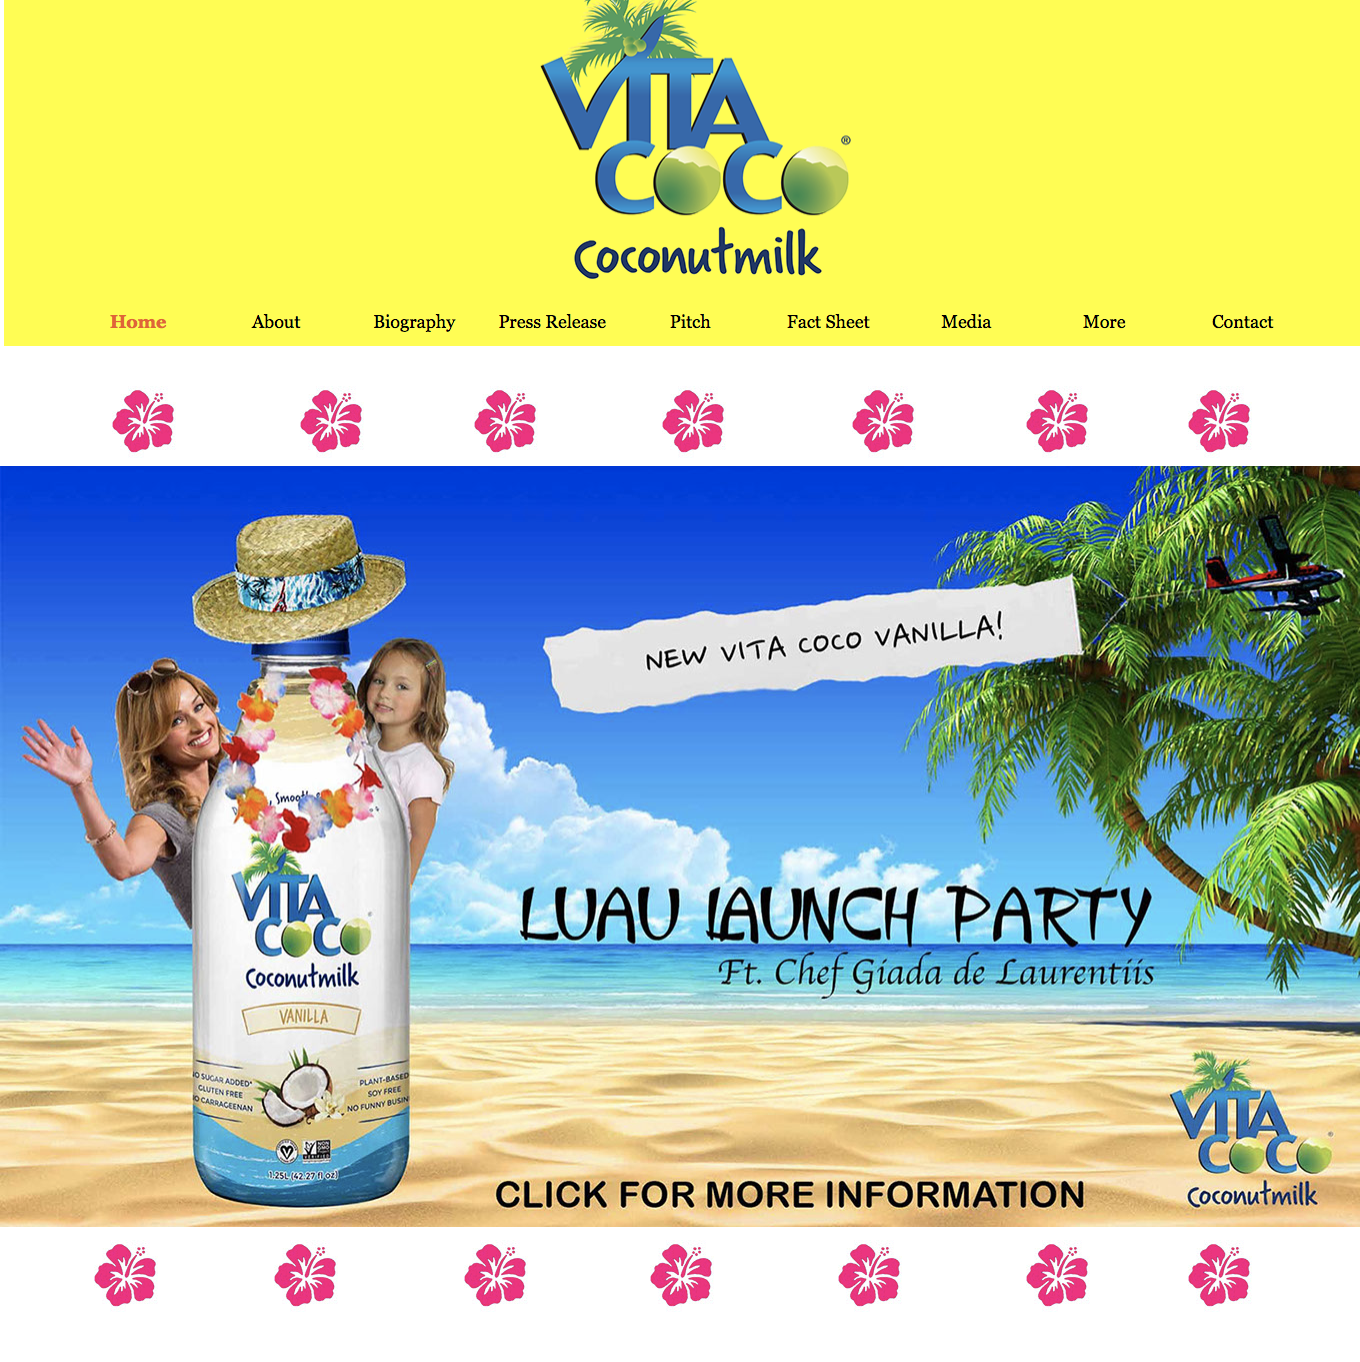 Vita Coco- Electronic Press Kit   Included: Website Mock-Up, About, Biography, Pitch, Fact Sheet, and Media Alert  Group Project 1